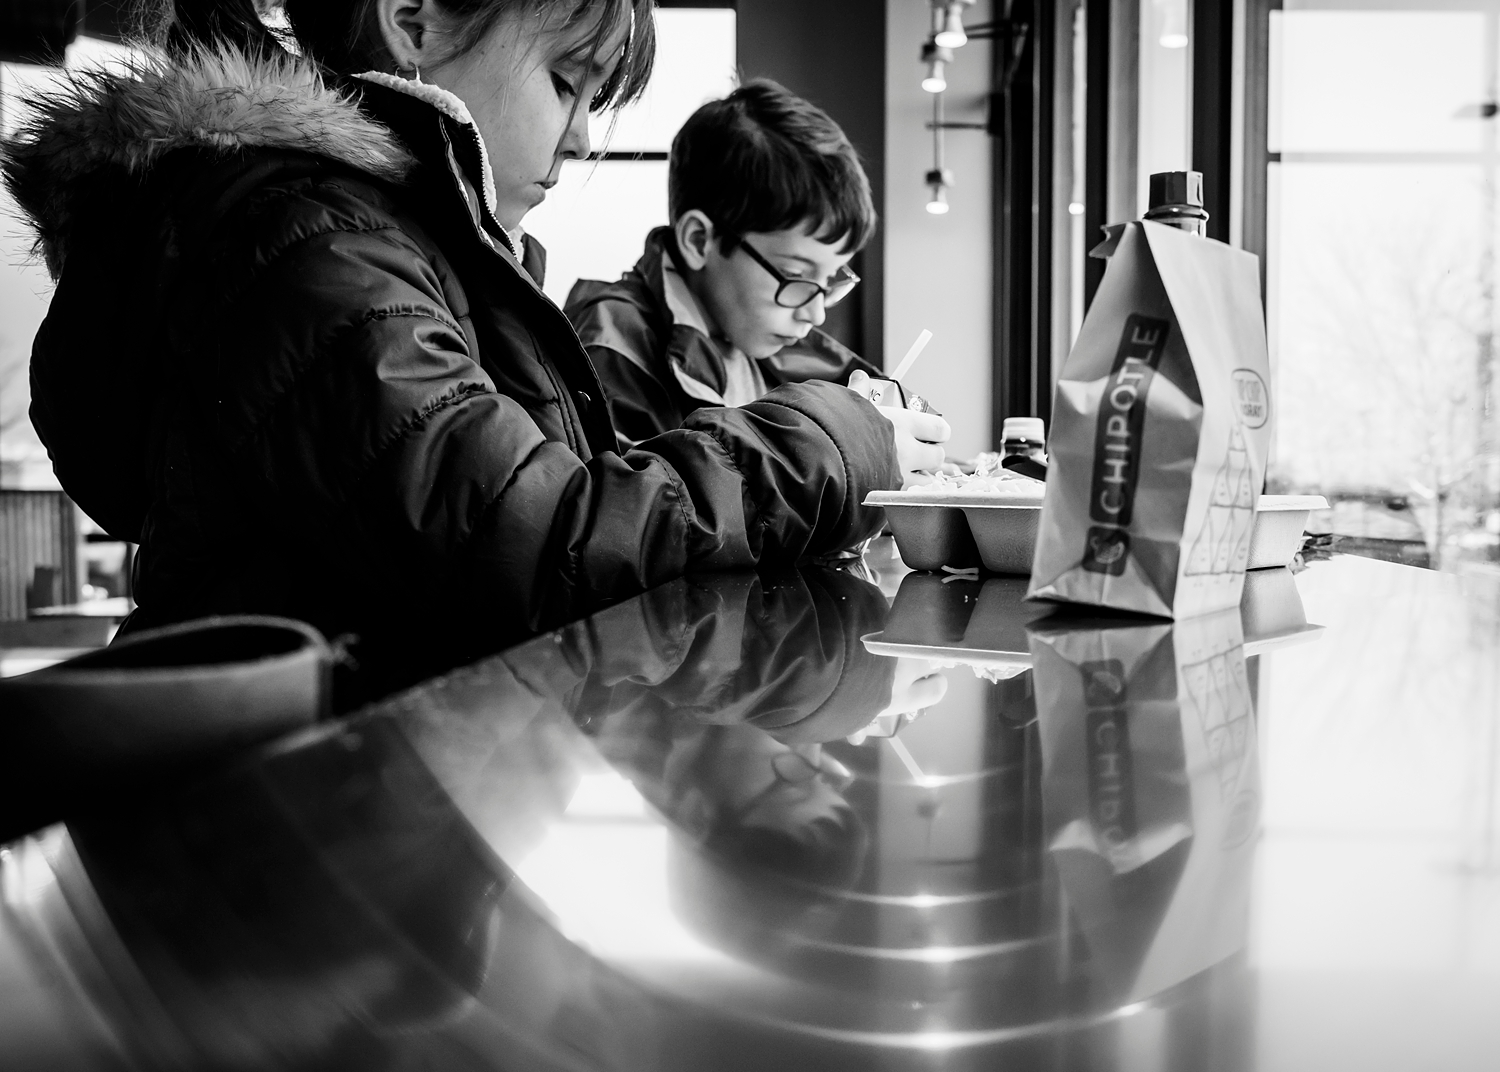 Our weekly Chipotle date between Kate's dance classes. |Getting Unschooled is a family lifestyle blog about unschooling, over-40 style, and non-toxic beauty. Thanks for pinning!